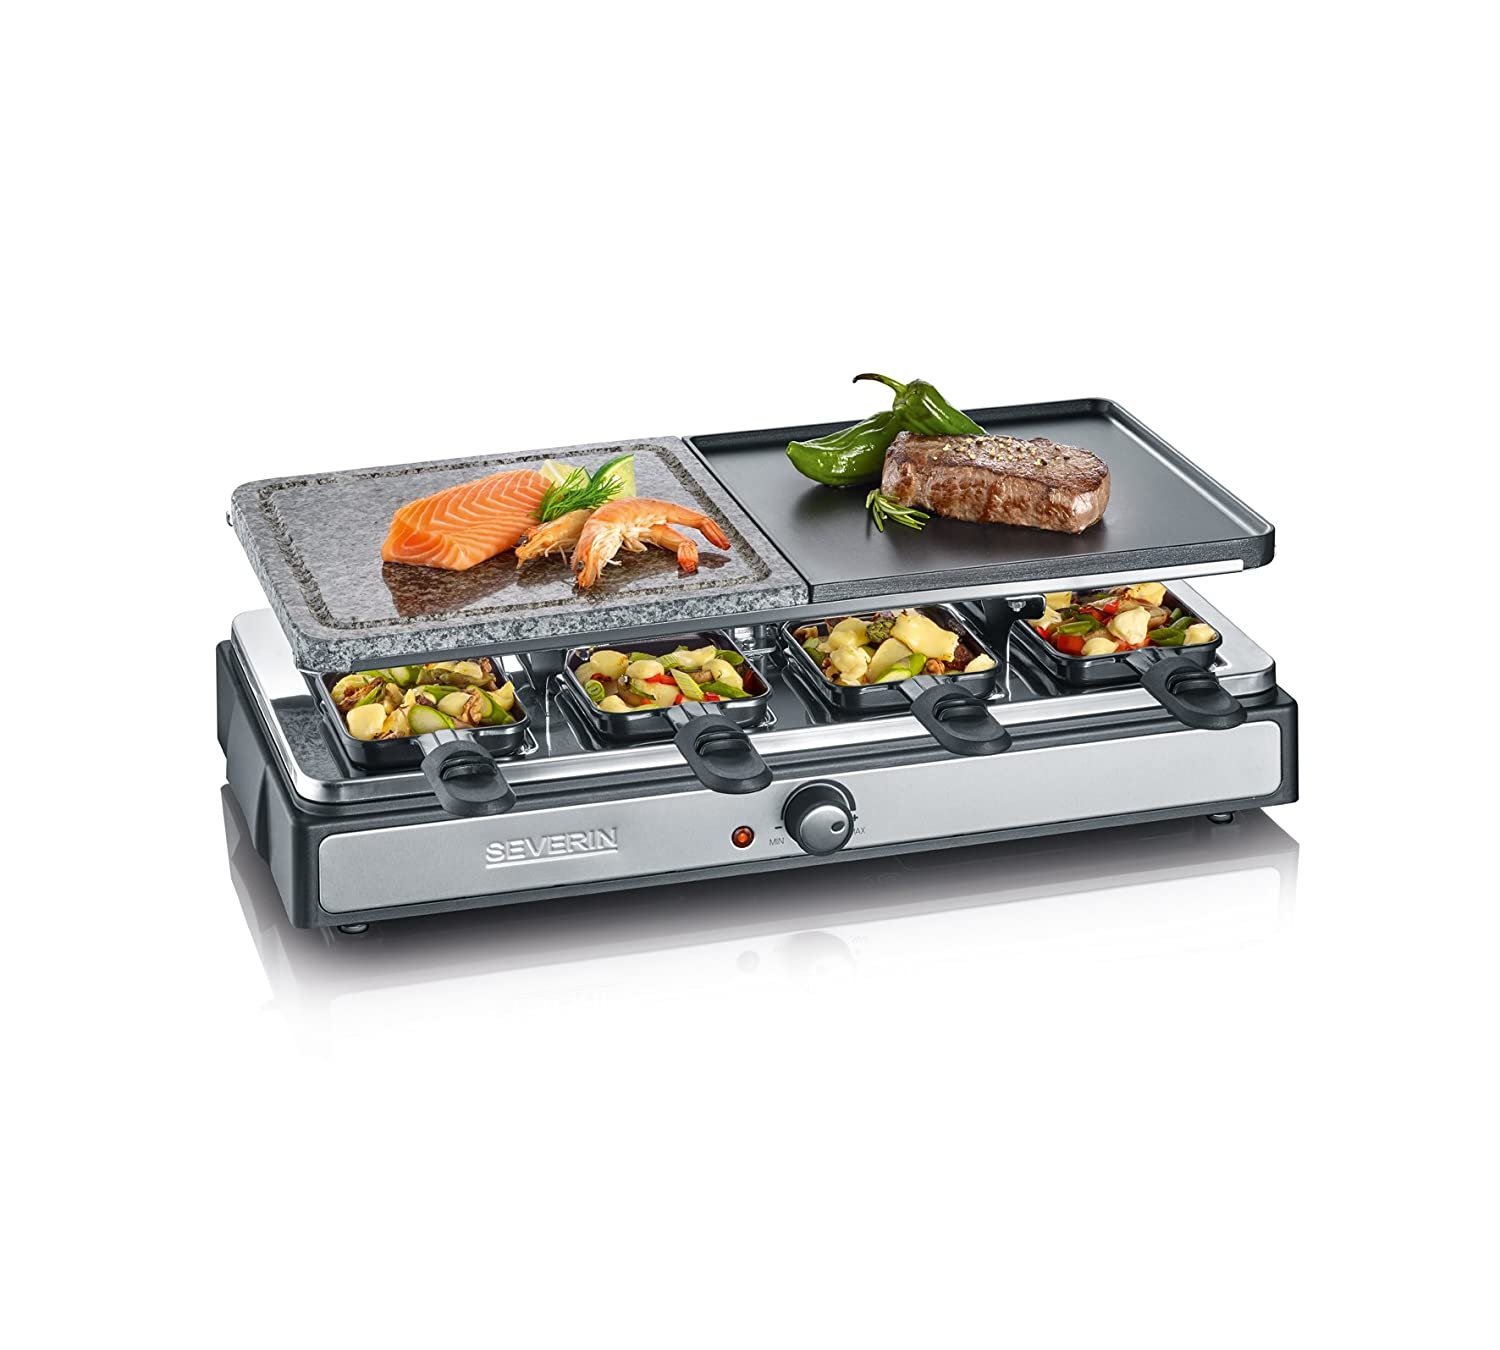 Raclette Grill Severin RG 2346 con piedra grill natural